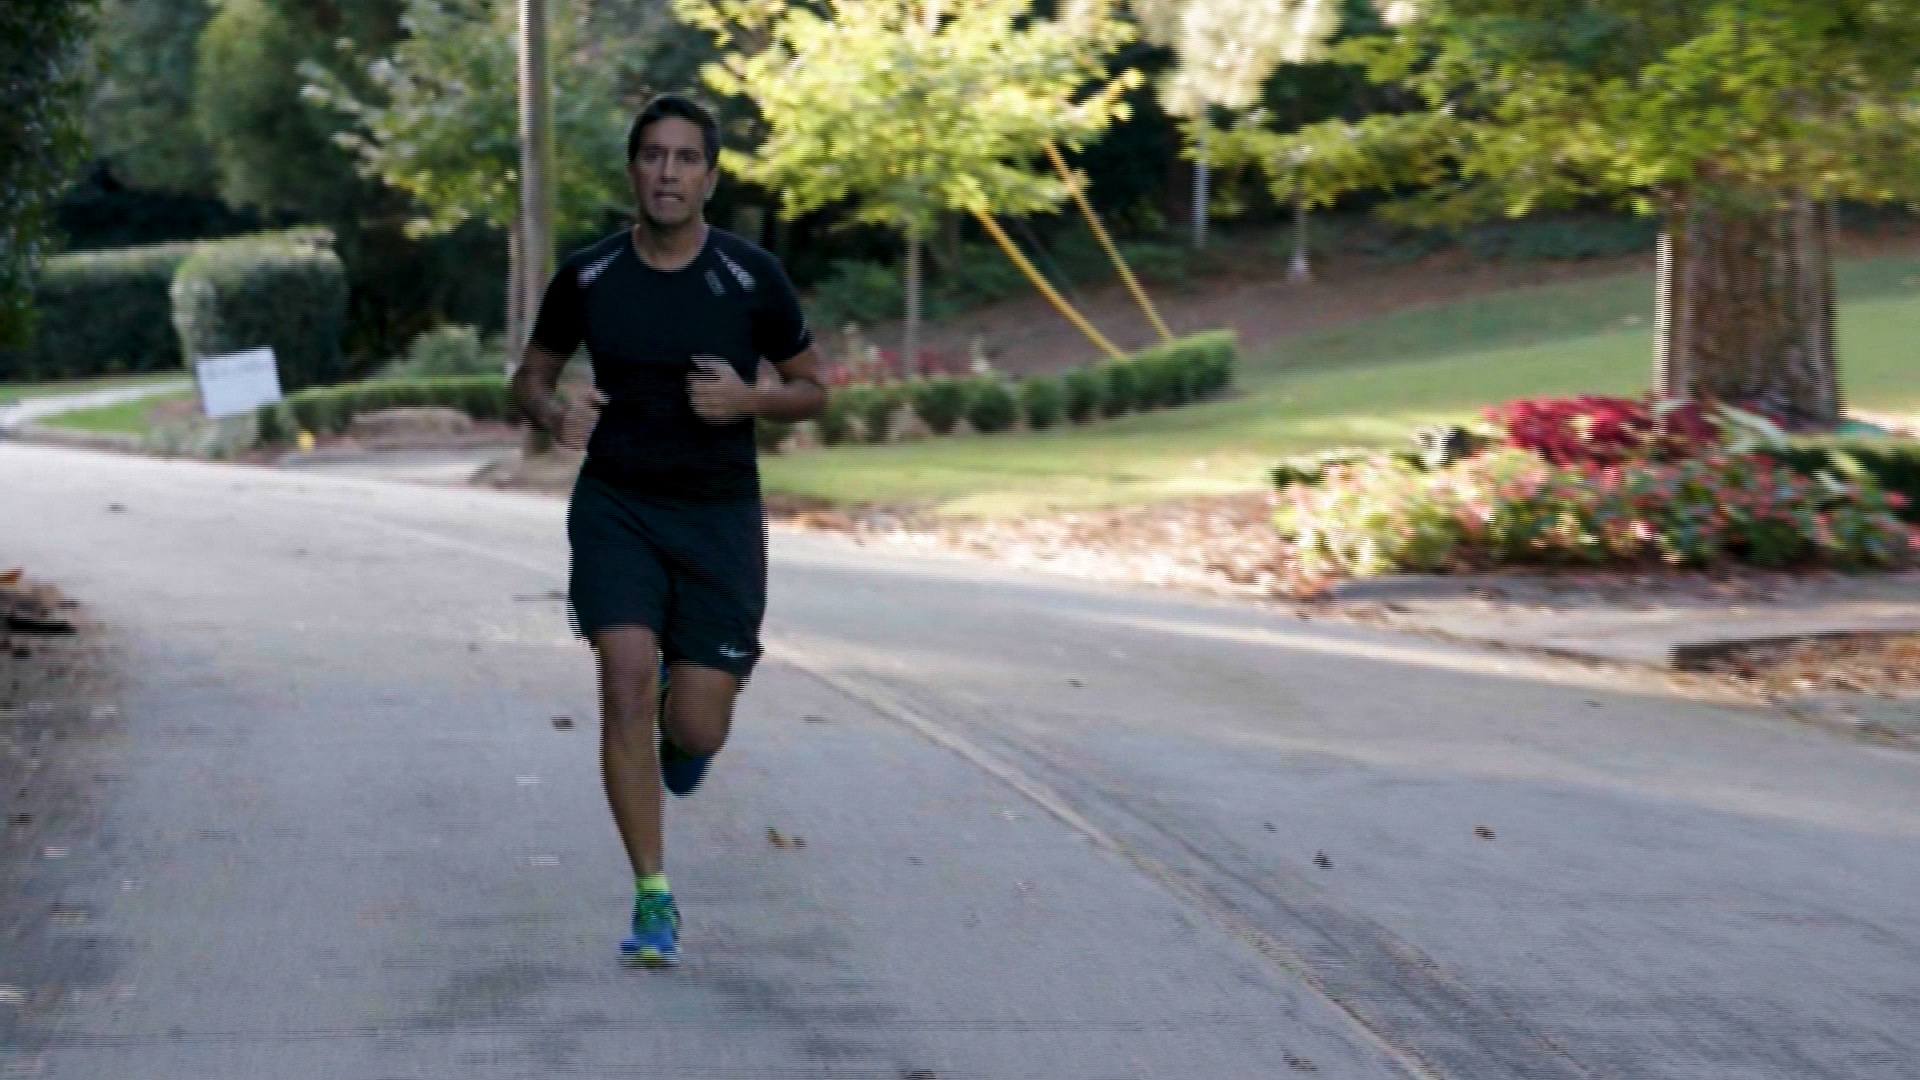 Global Running Day is going virtual this year